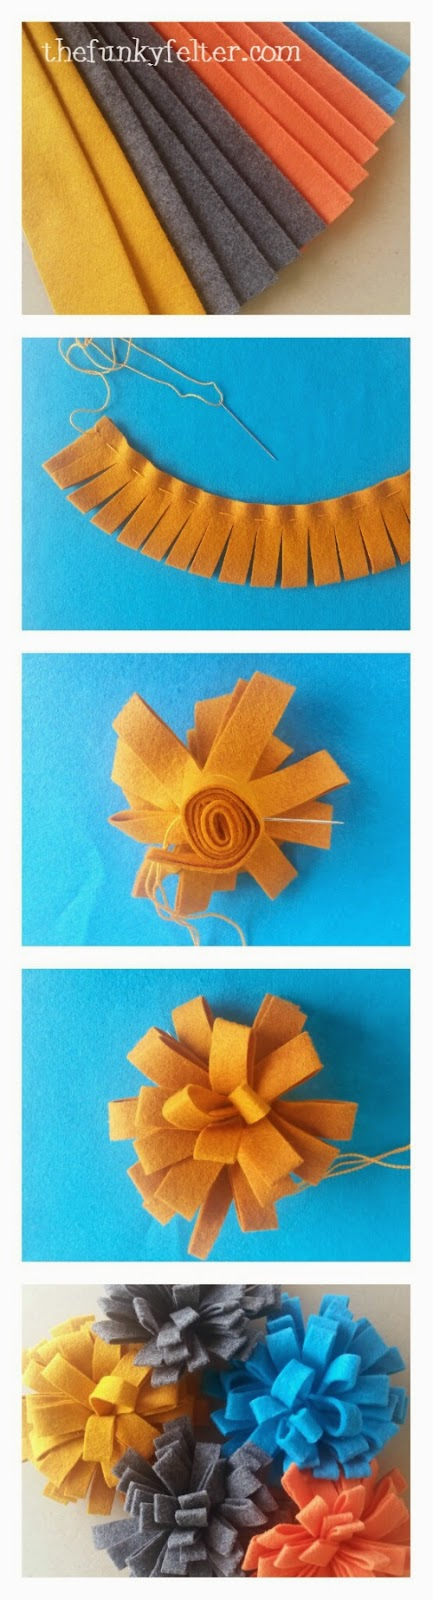 instructographic diy felt flower craft tutorial